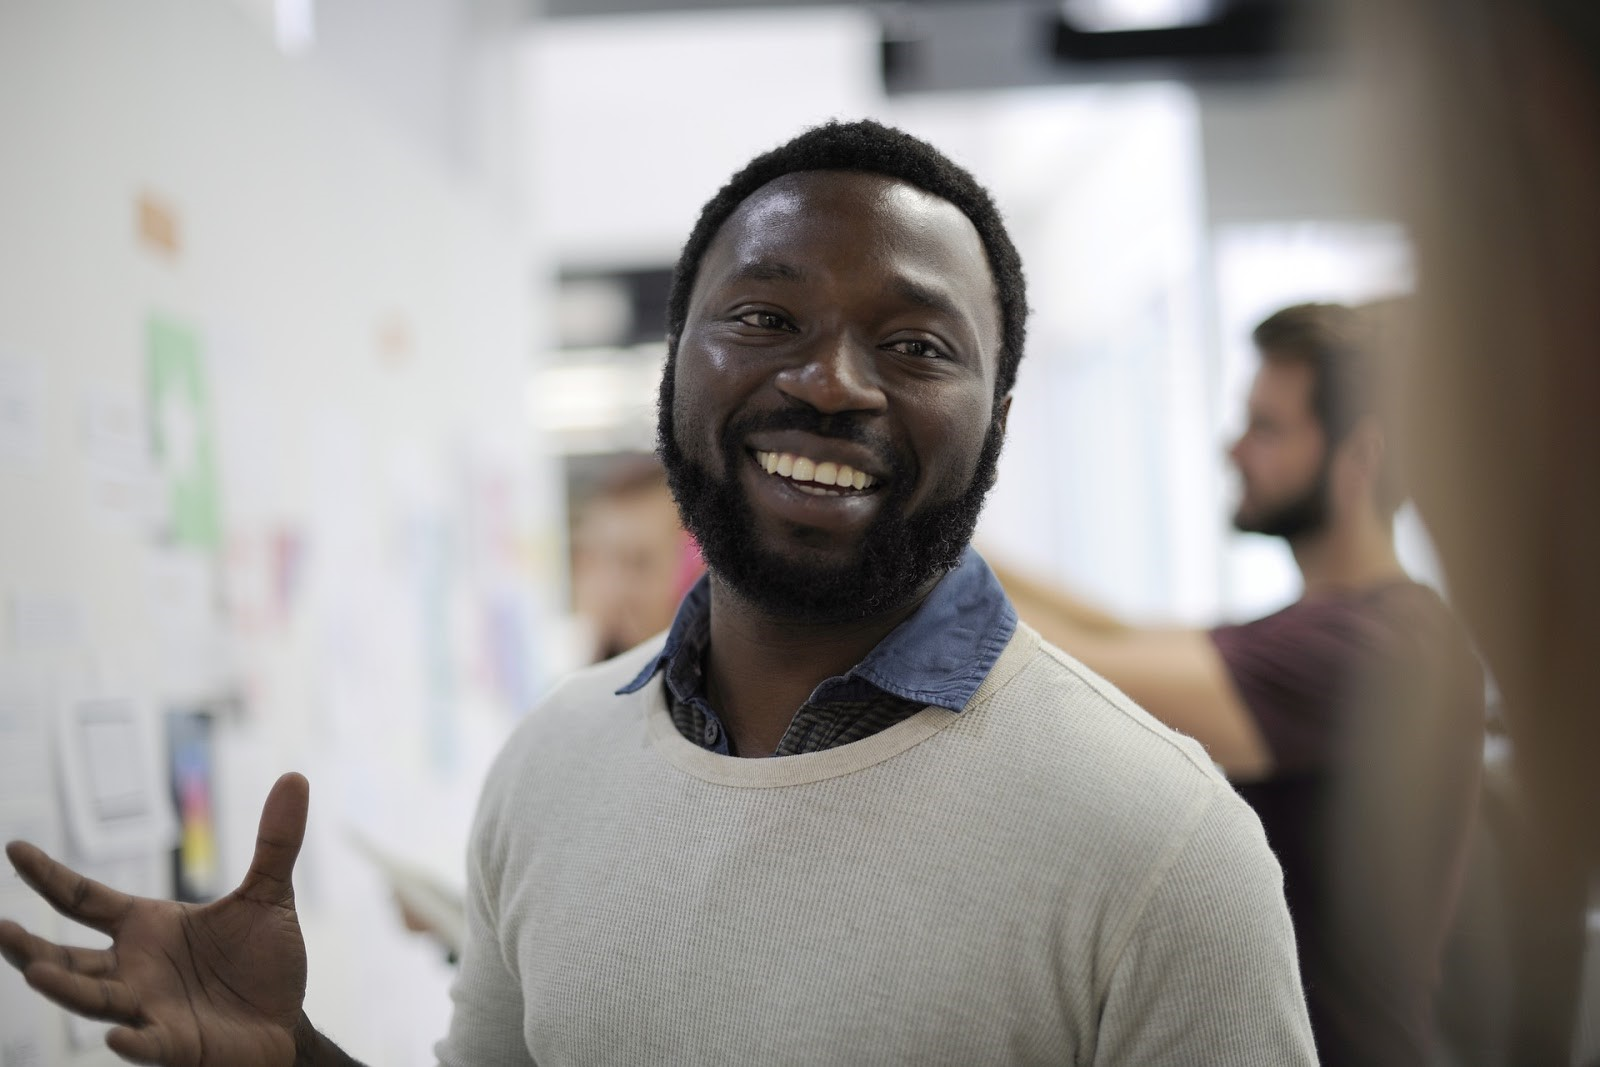 Photo of a person smiling.